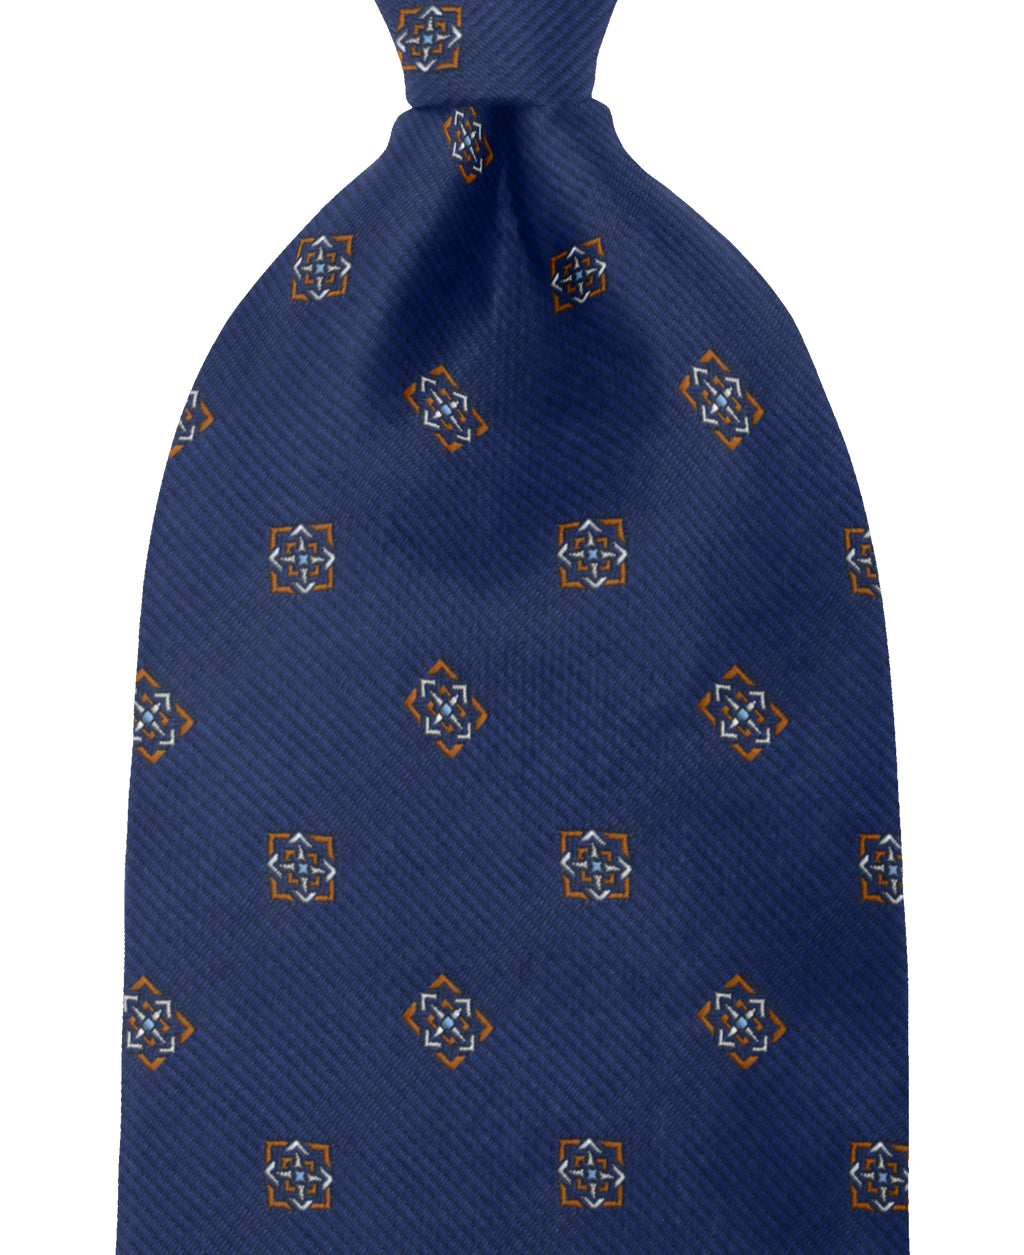 Navy patterned silk tie